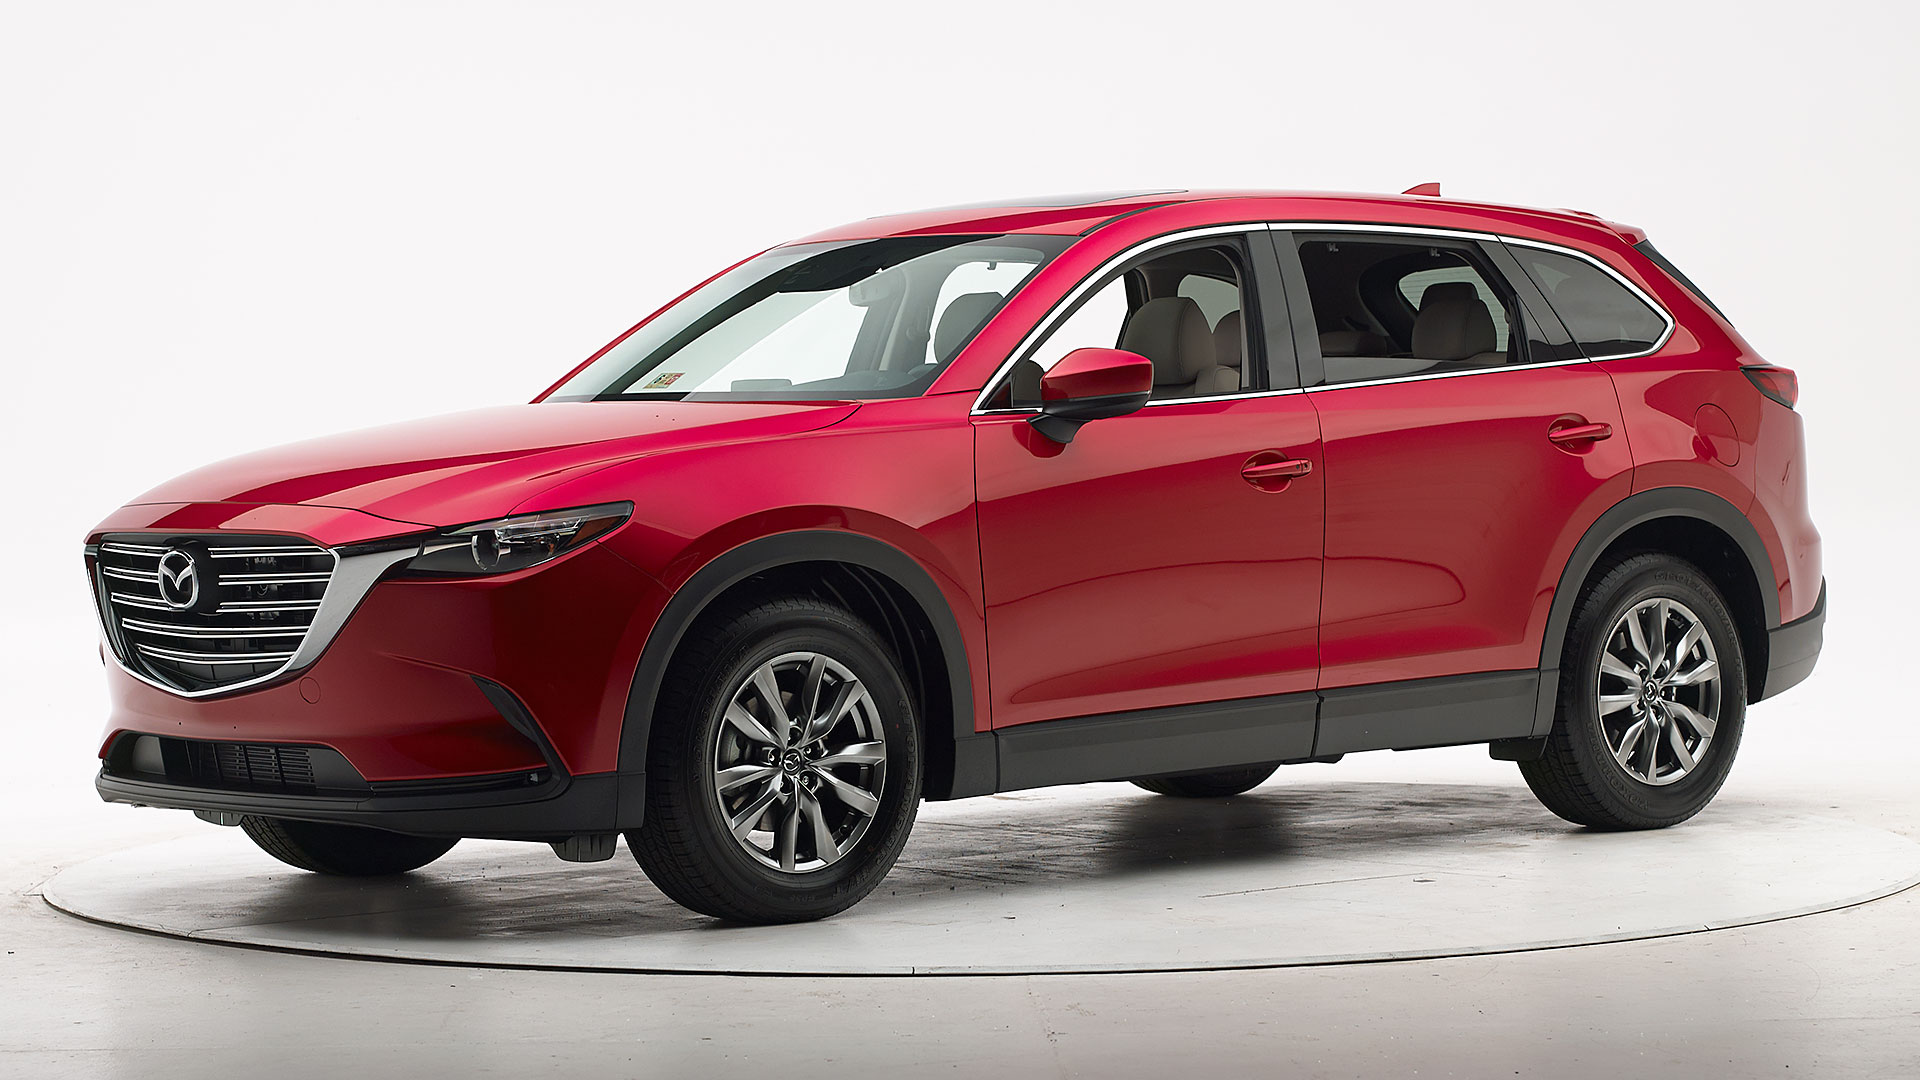 2016 Mazda CX-9 4-door SUV